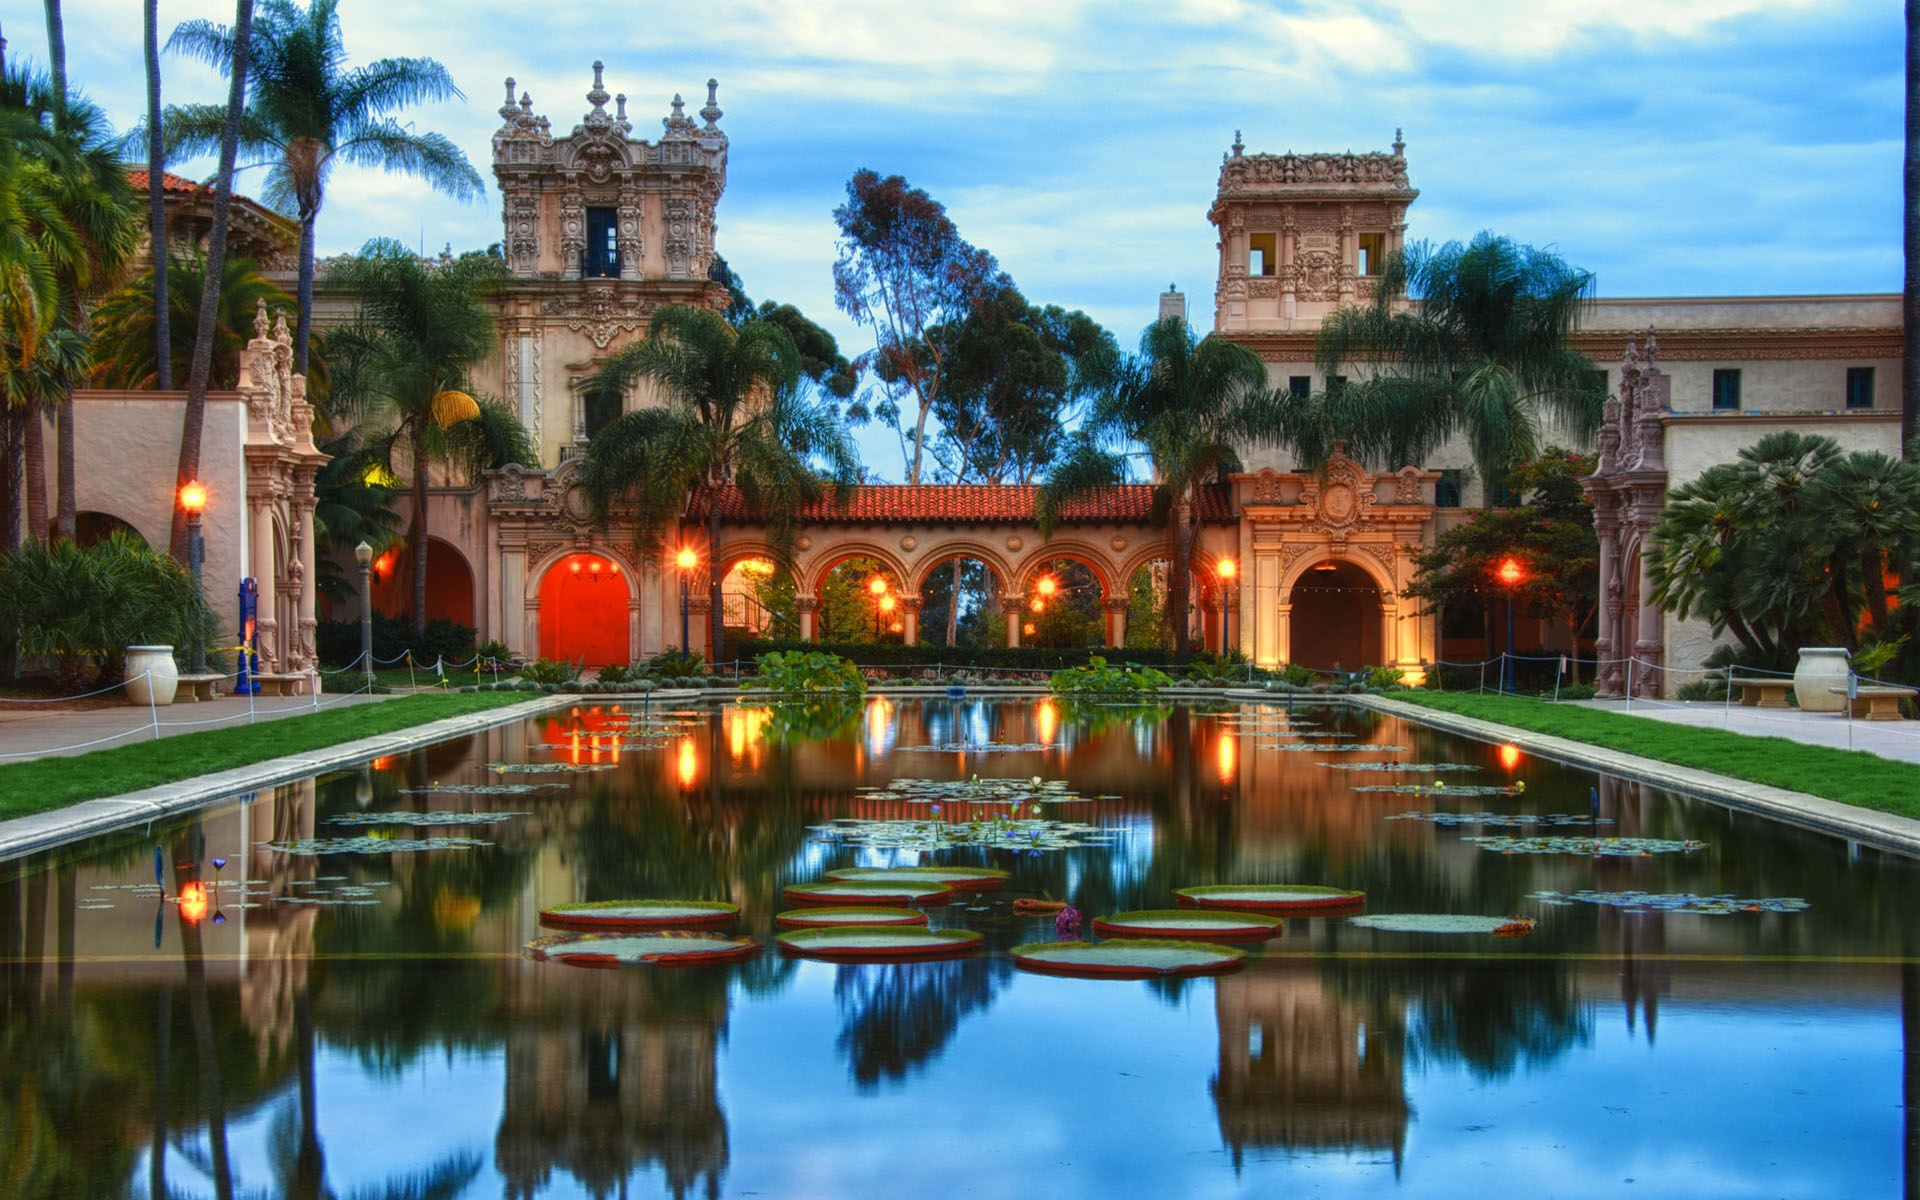 Download wallpaper 1920x1200 balboa park san diego california 1920x1200